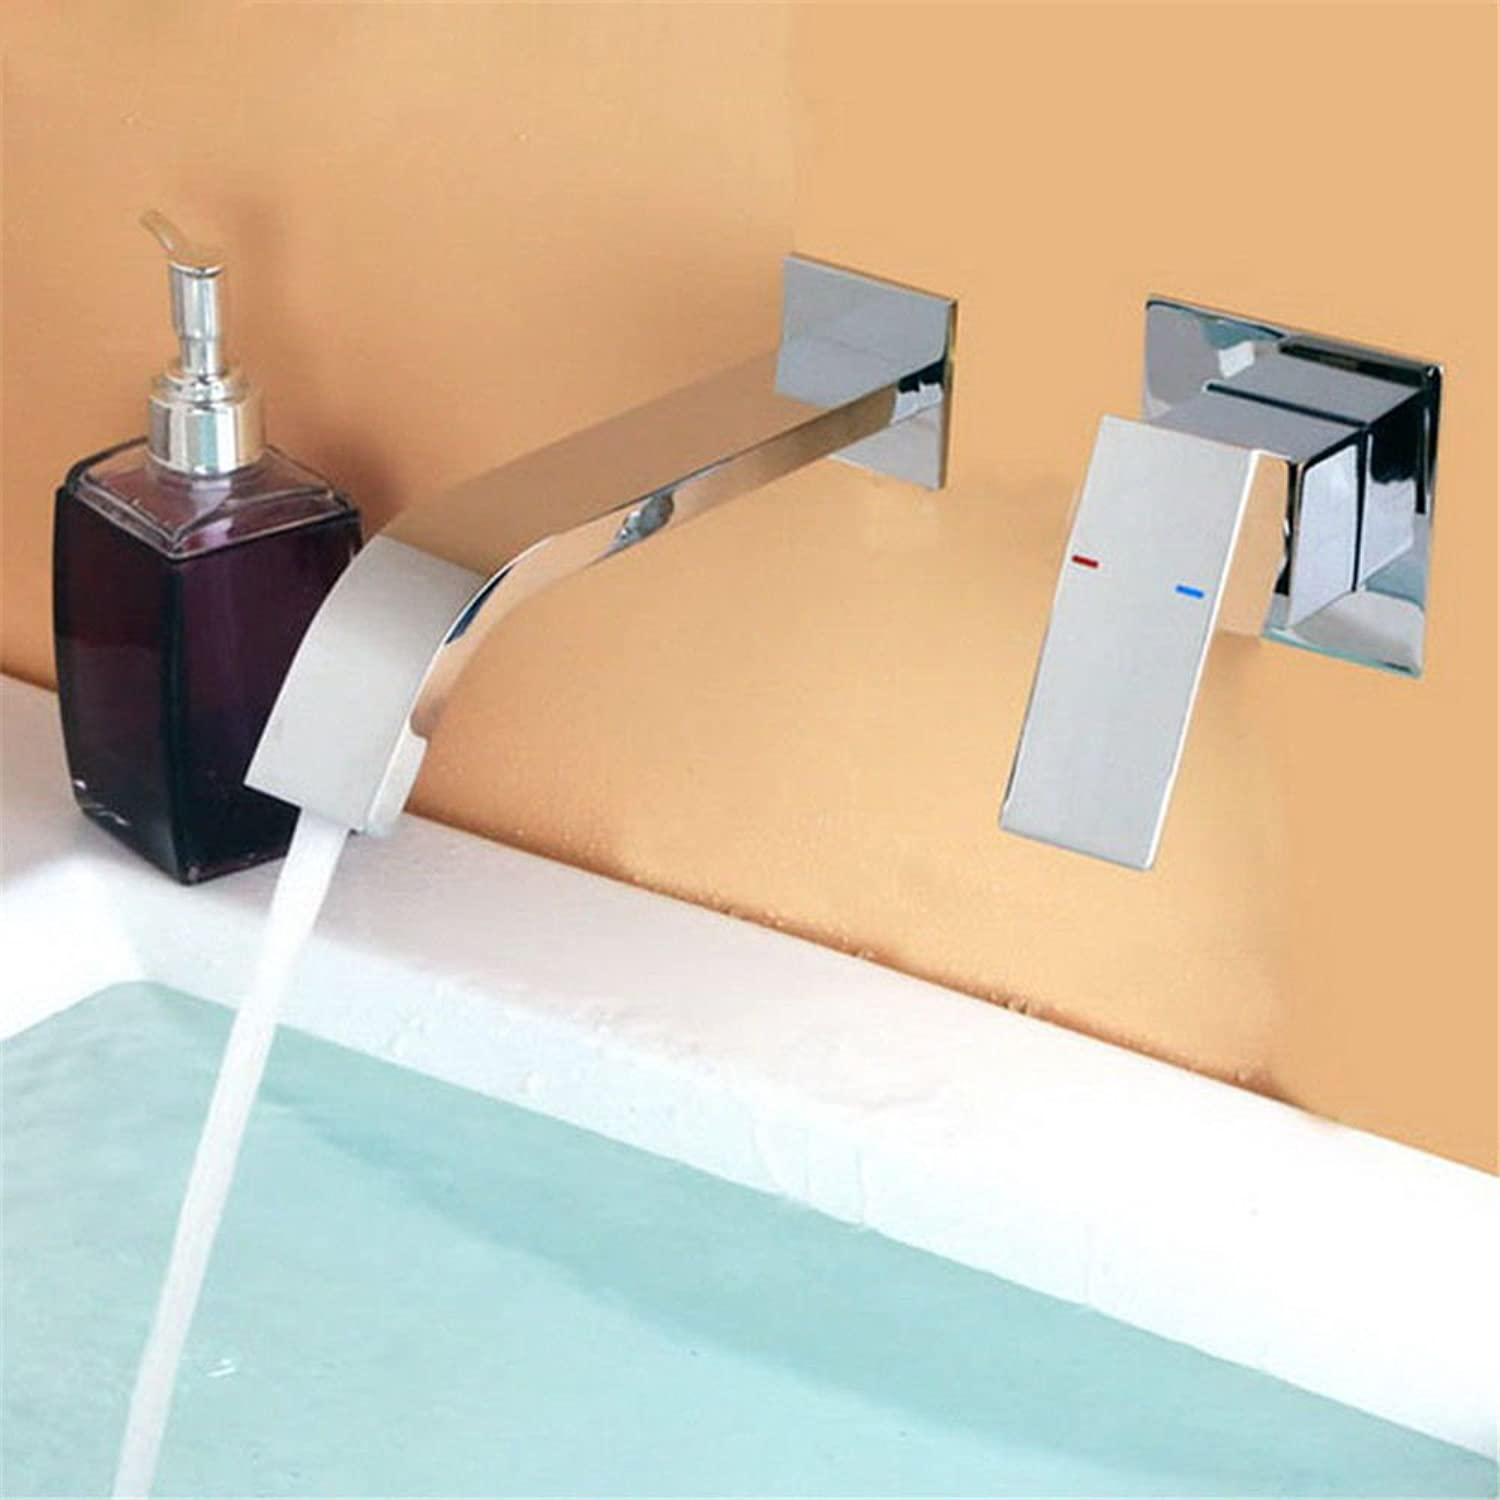 Hlluya Professional Sink Mixer Tap Kitchen Faucet Basin taps into the wall faucet full copper TAP-TAP-off Kai-type water taps single type water taps